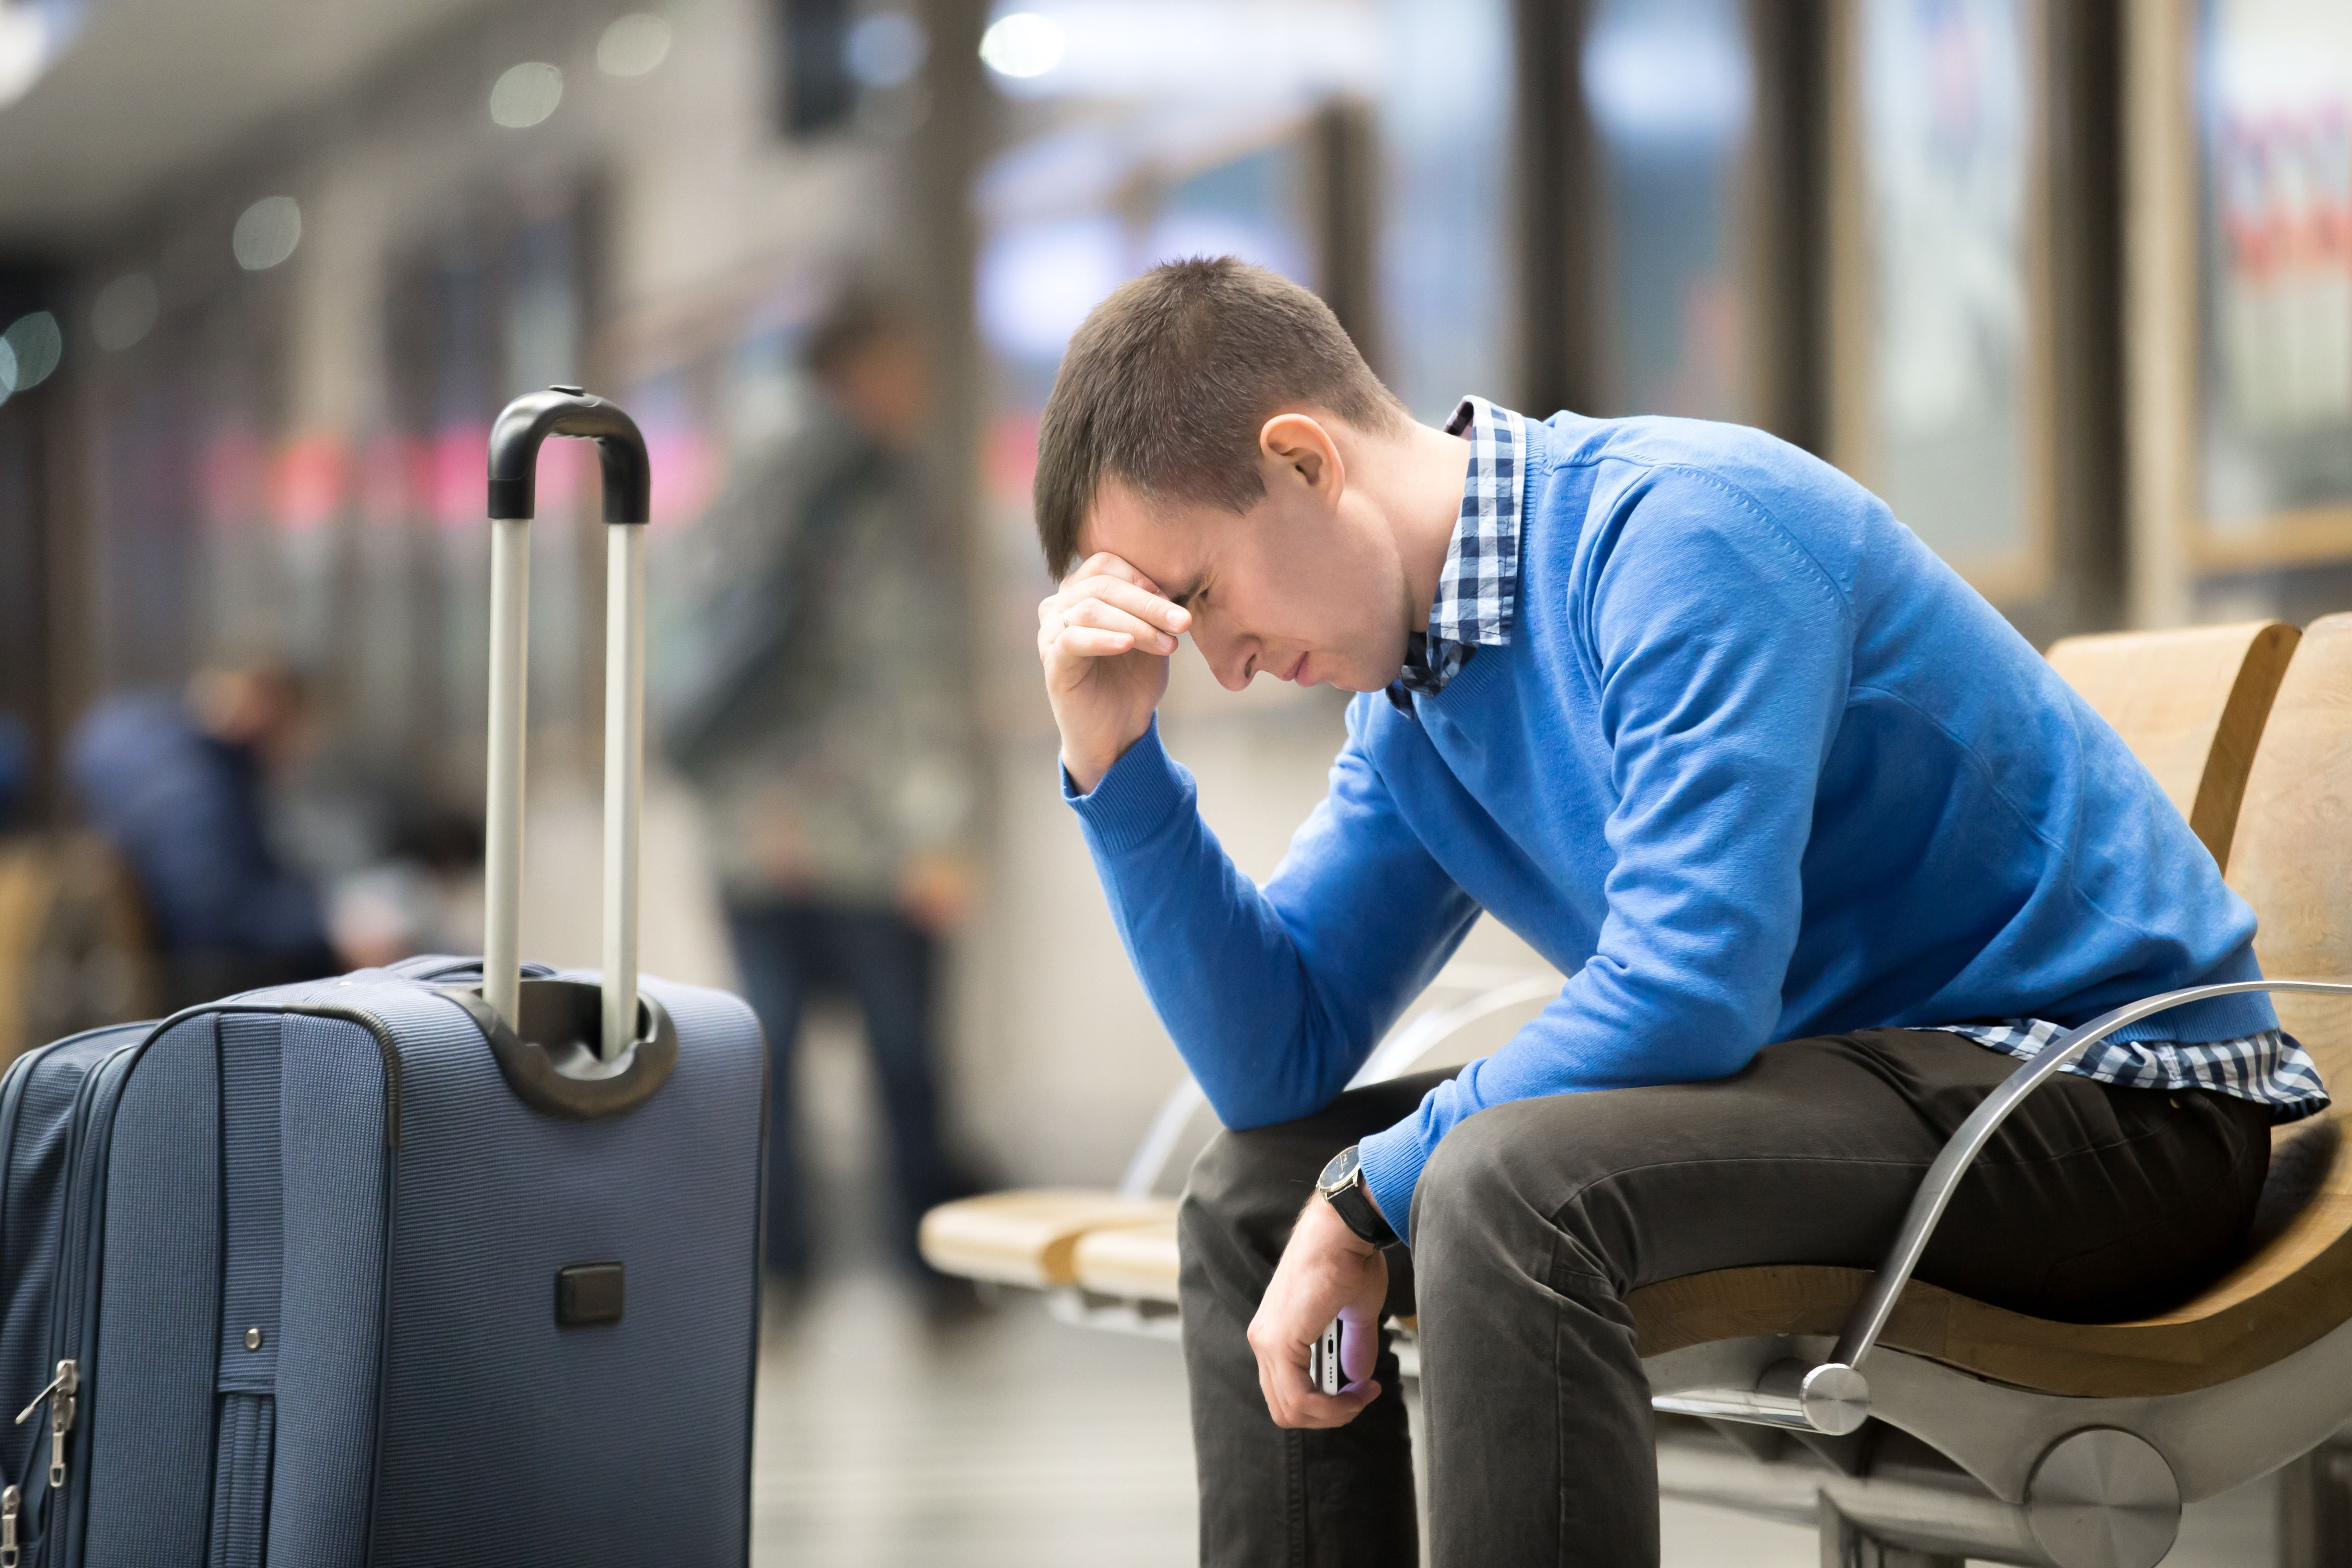 A man looking regretful while seated. | Source: Shutterstock